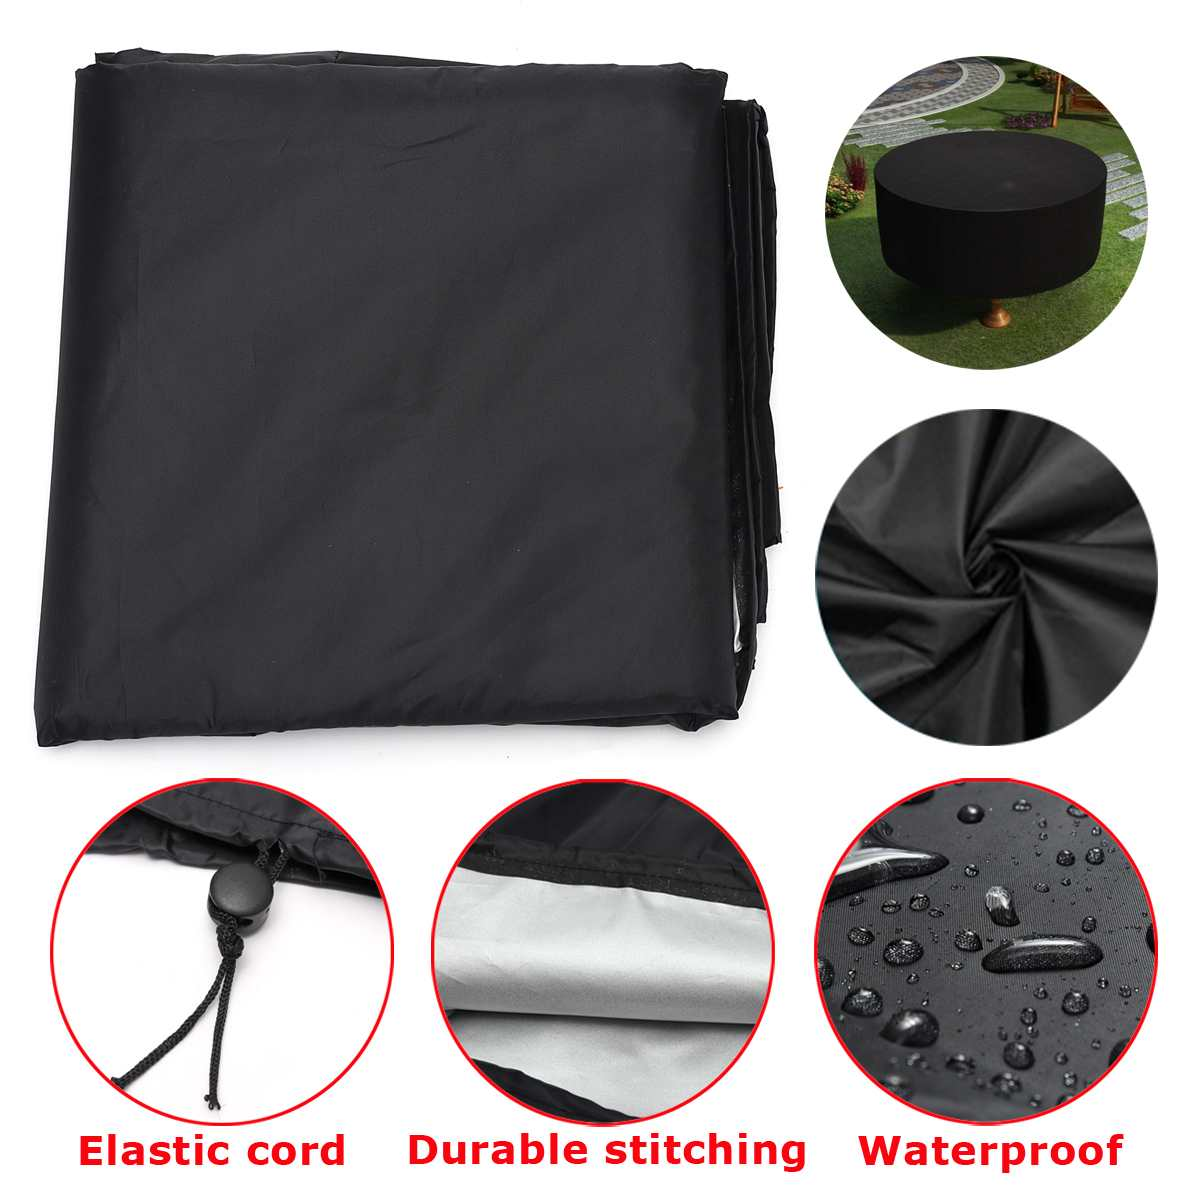 Round Anti-dust Cover Outdoor Garden Yard Patio Rain Snow Table Chair Furniture Waterproof Cover for Round Furniture 73x38 Inch 2